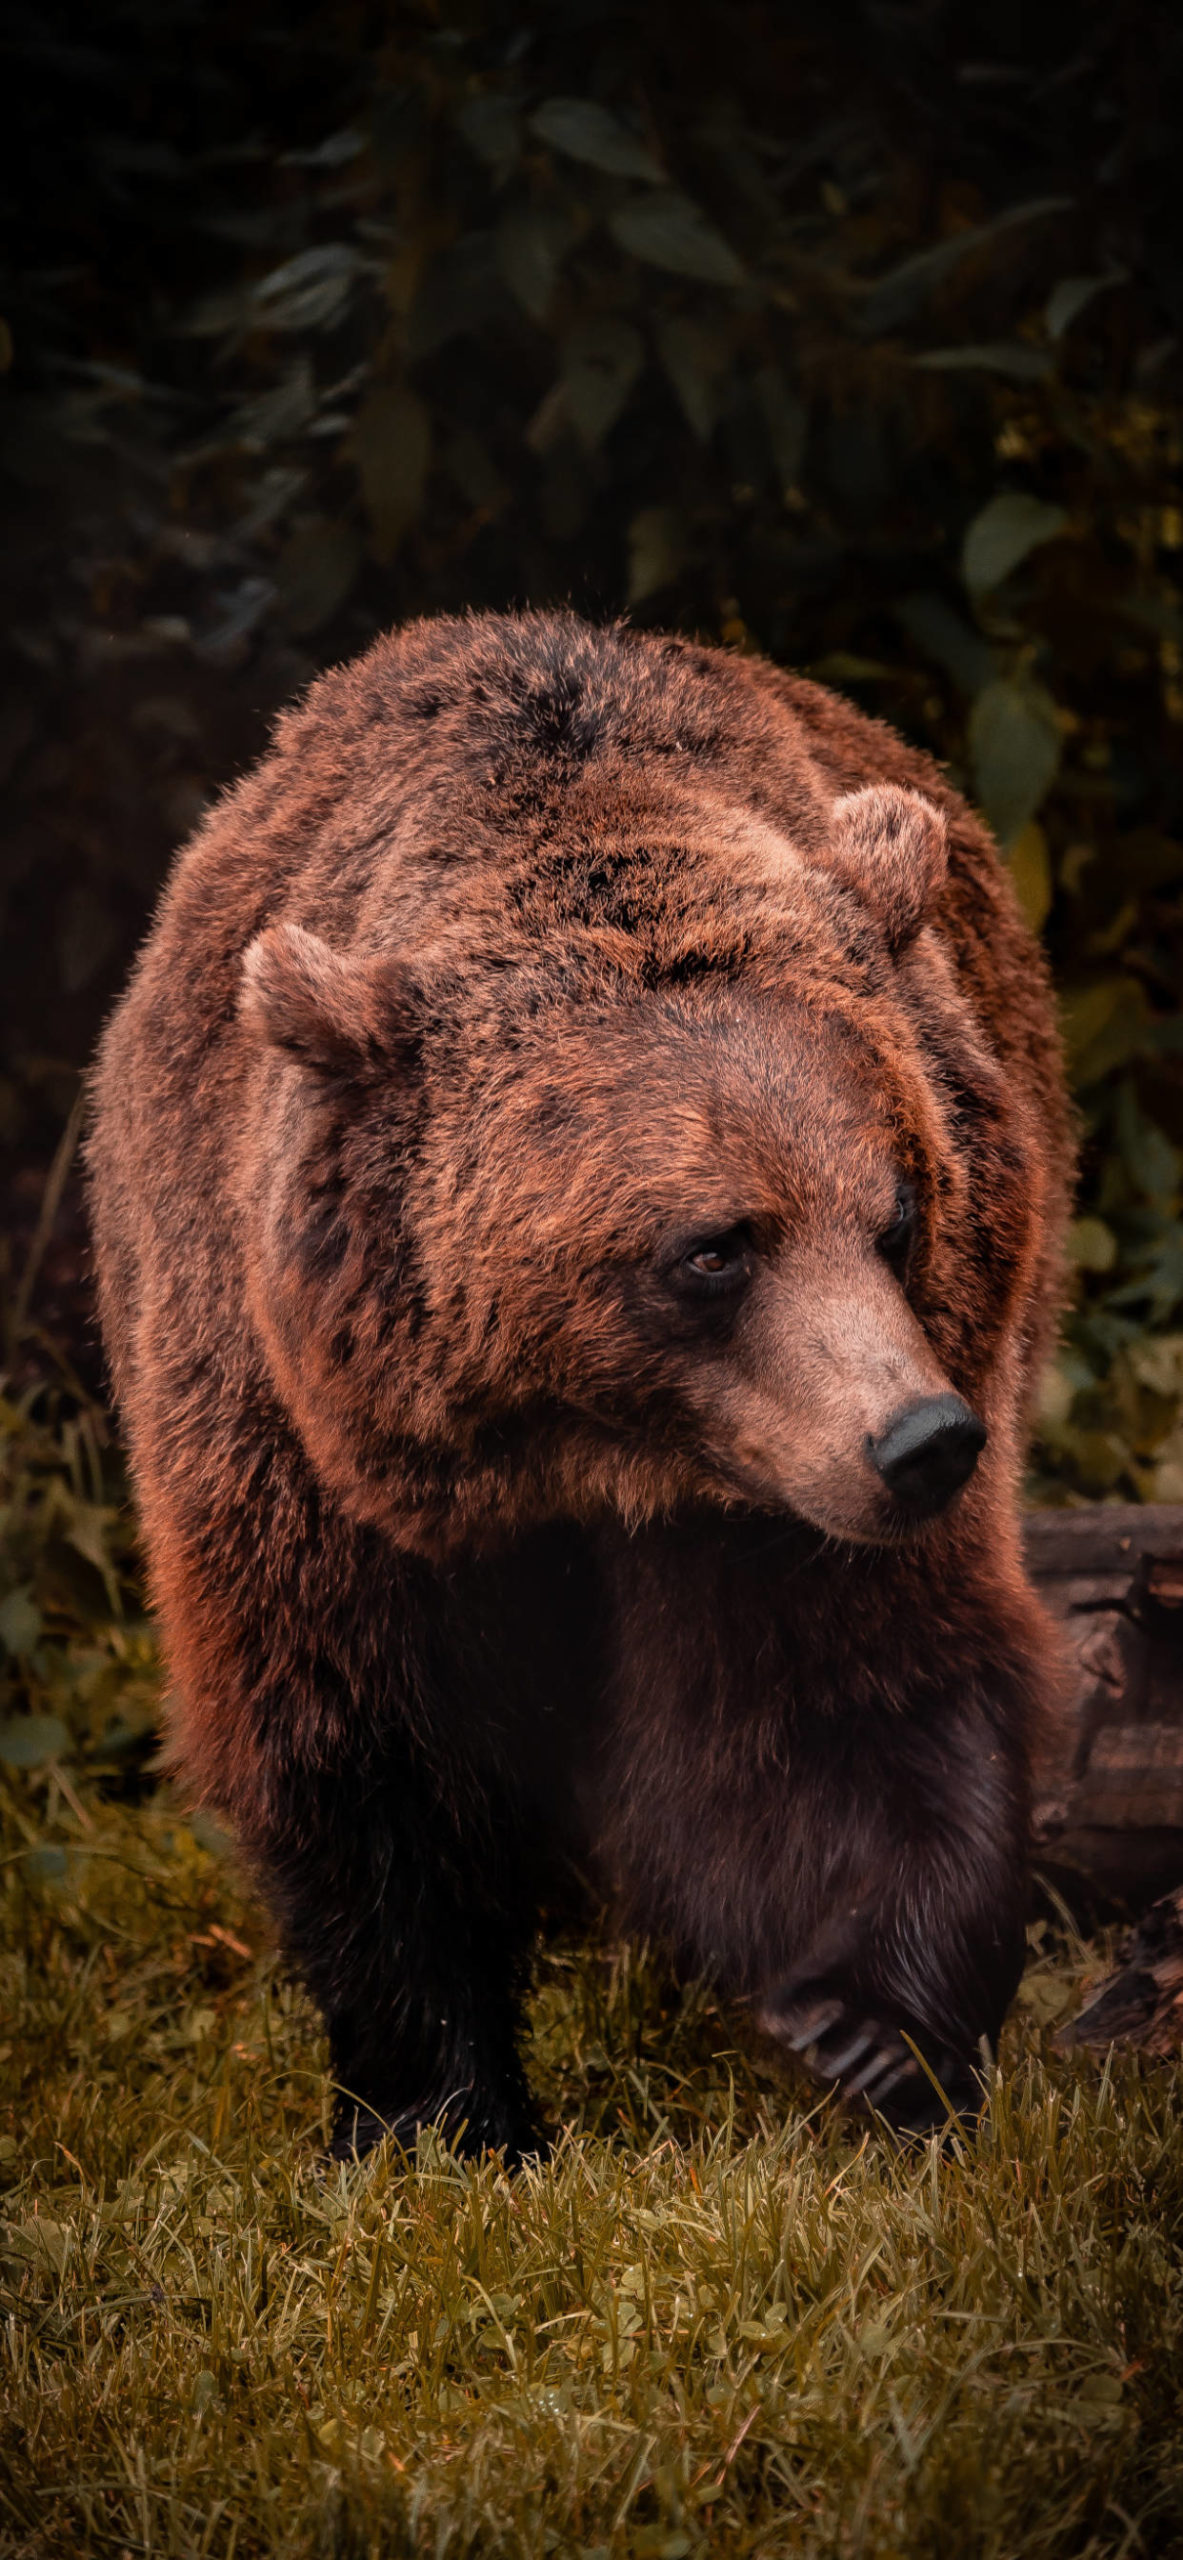 iPhone wallpapers bear arbesbach scaled Bear